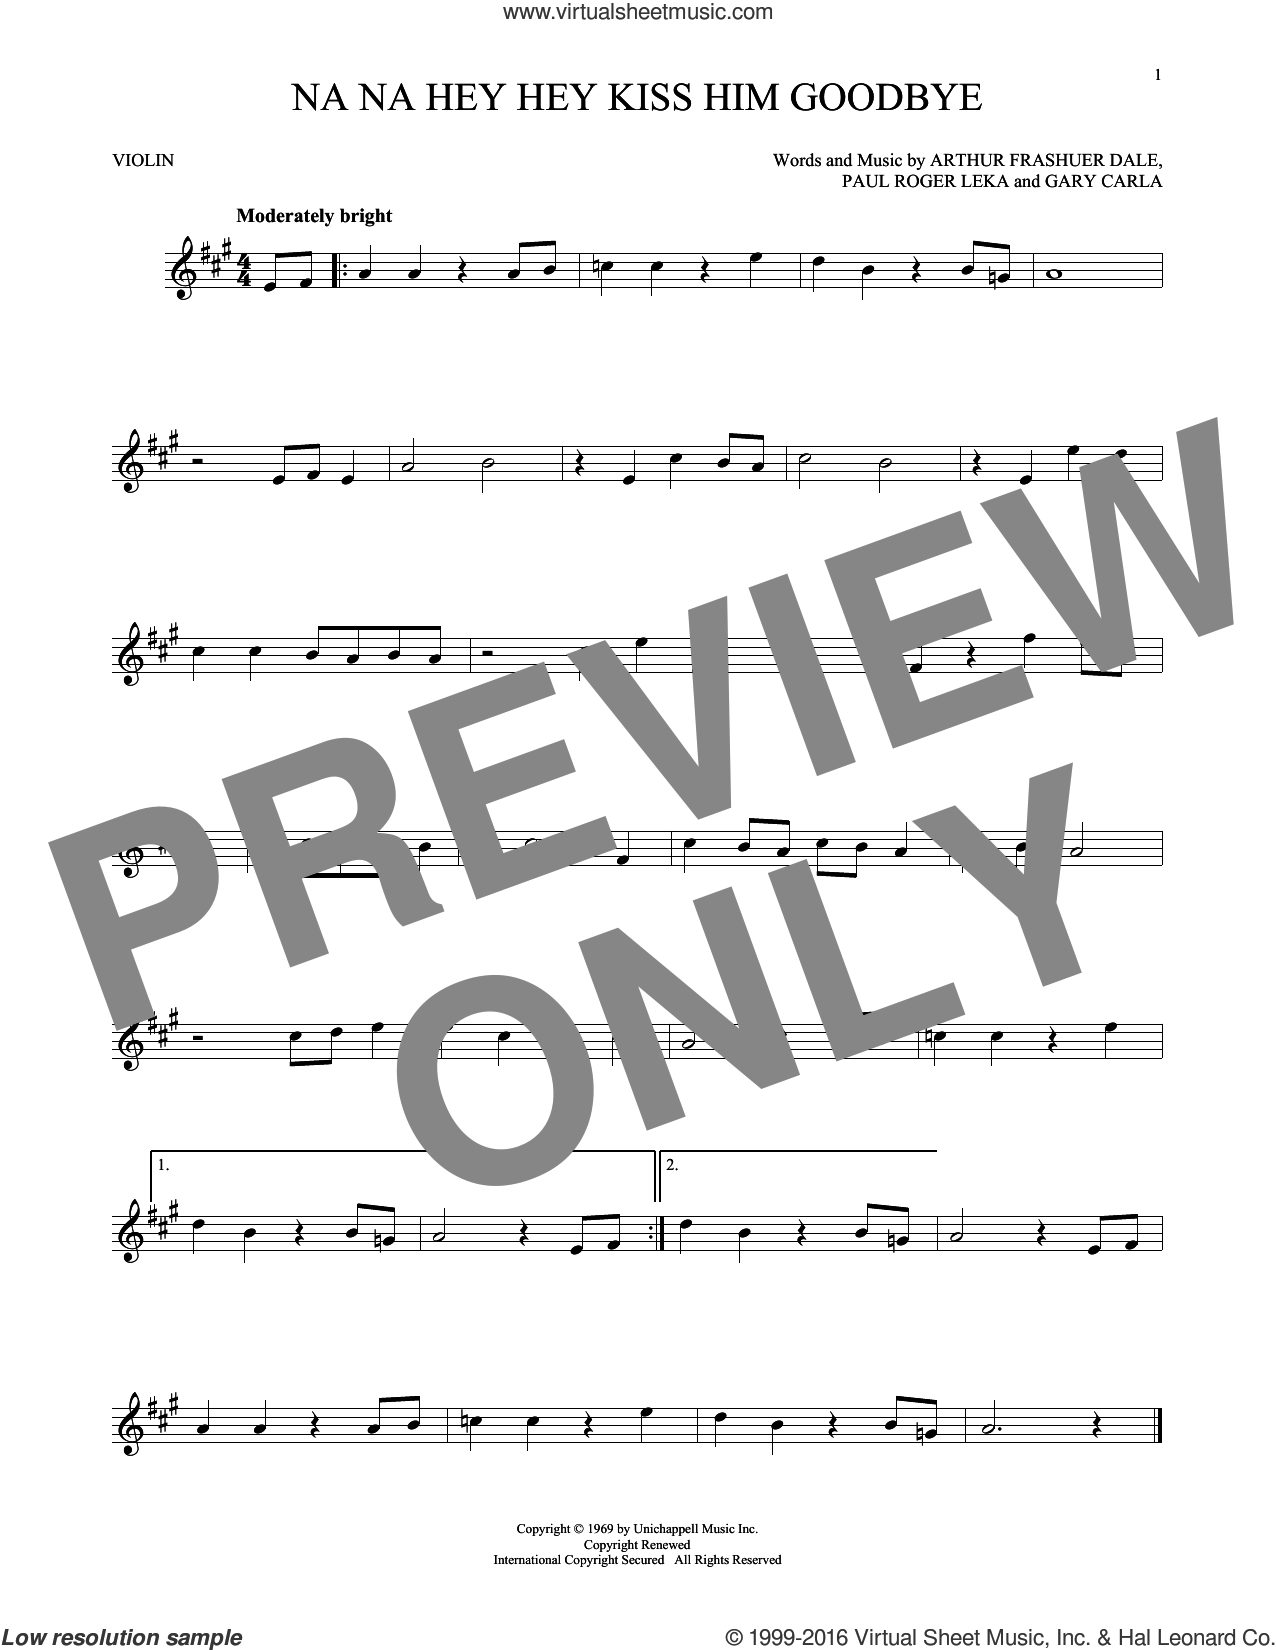 Na Na Hey Hey Kiss Him Goodbye sheet music for violin solo by Steam, Dale Frashuer, Gary De Carlo and Paul Leka, intermediate violin. Score Image Preview.